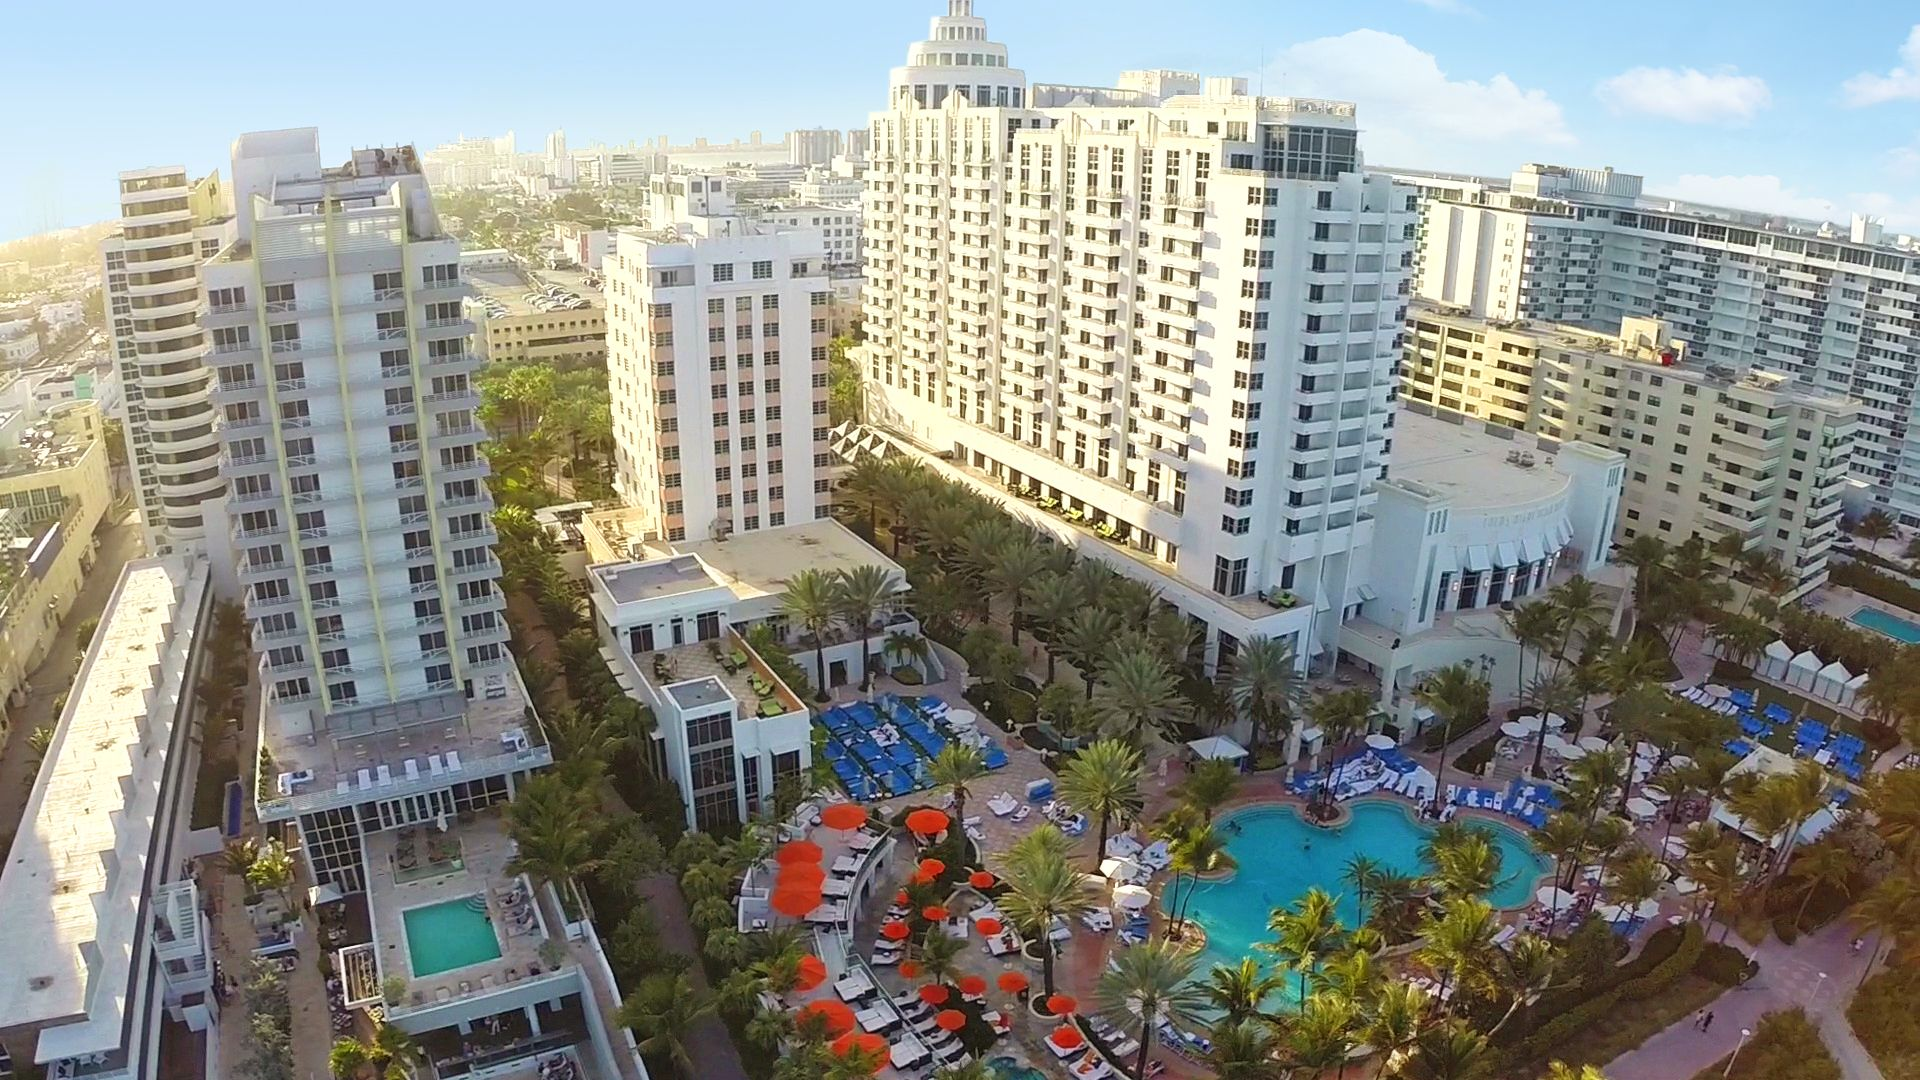 We Had The Pleasure Of Visiting The Loews Miami Beach Hotel And It Is Exquisite